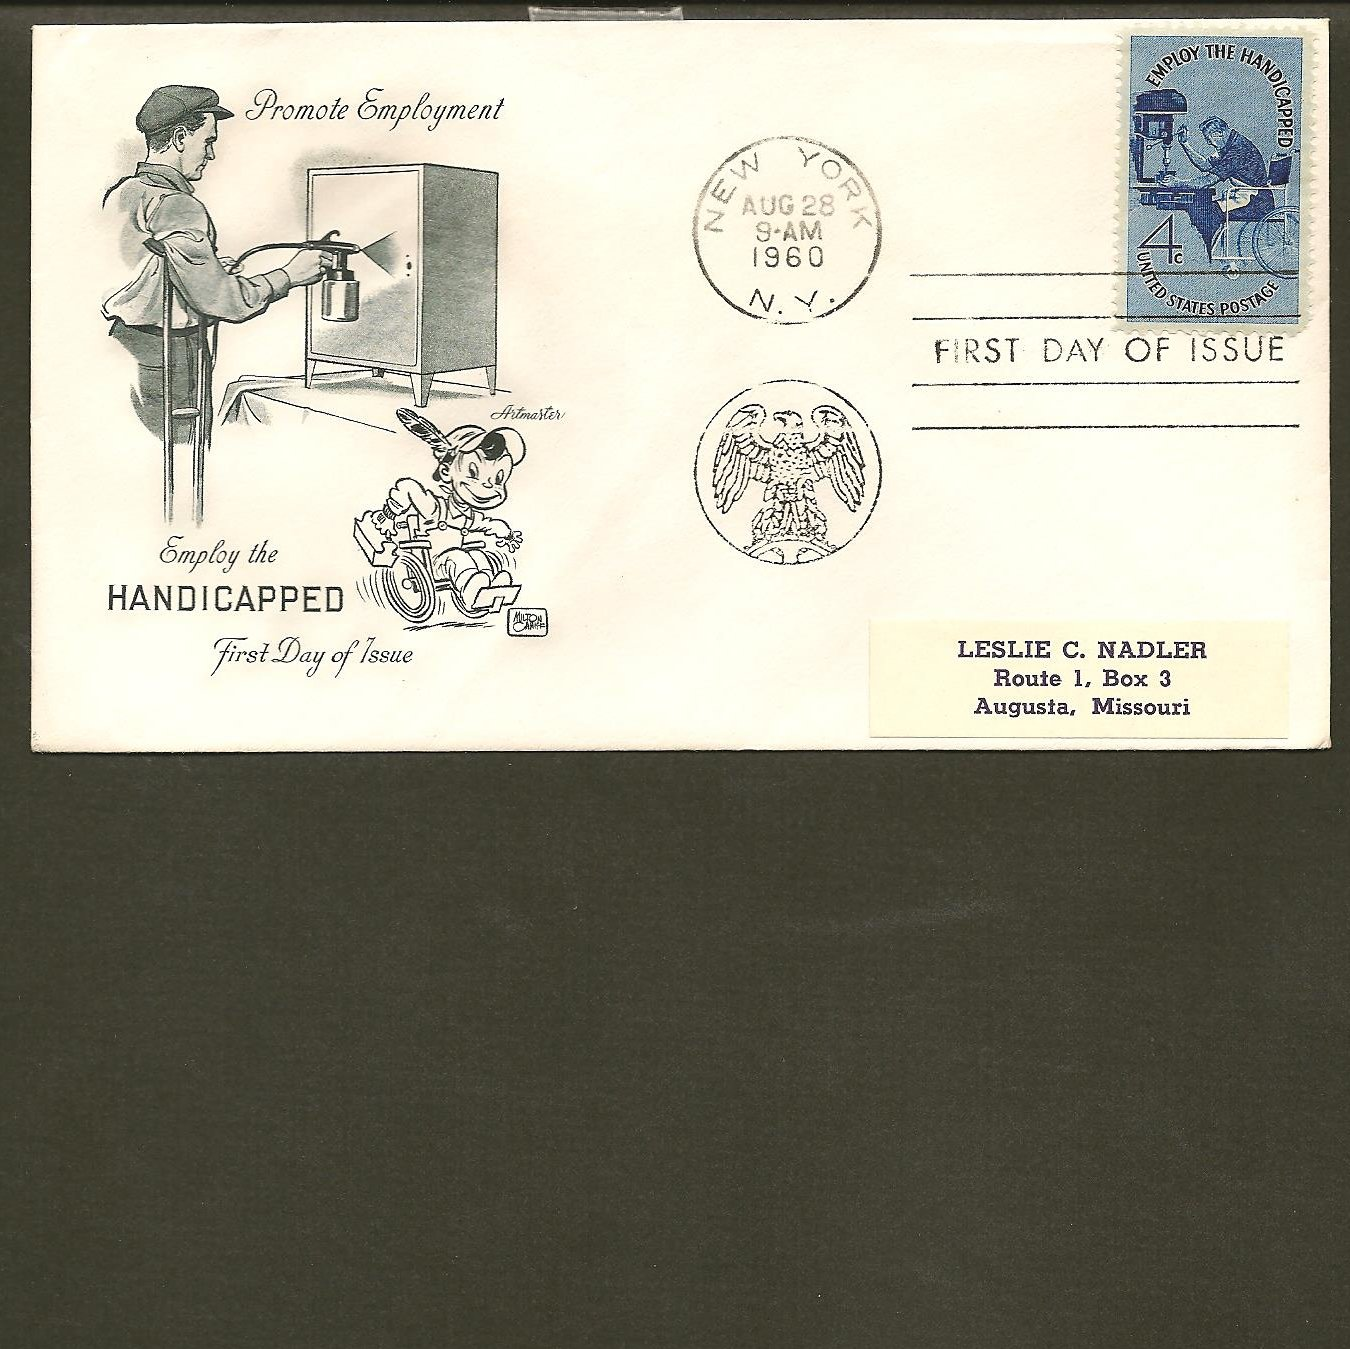 1960 USPS Artmaster FDC Scott #1155 -New York, NY- Employ Handicapped -First Day of Issue/Cover